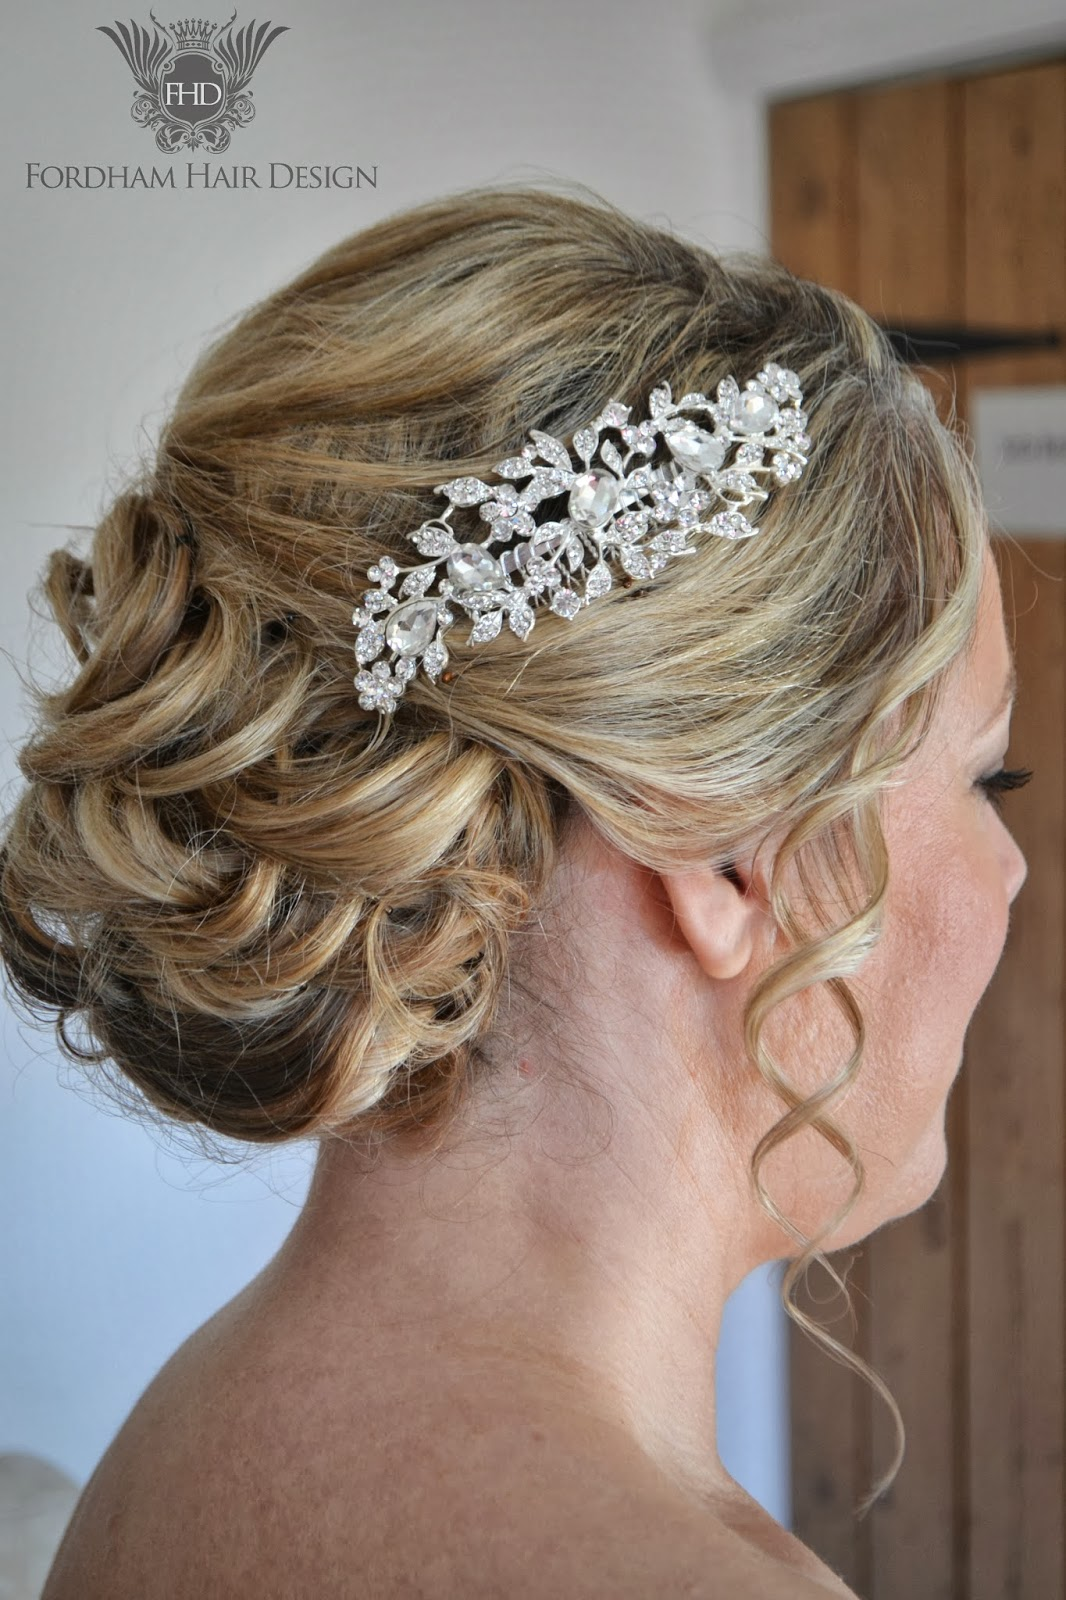 Wedding hair accessories gloucestershire - Wedding Bridal Hair Specialist November 2013